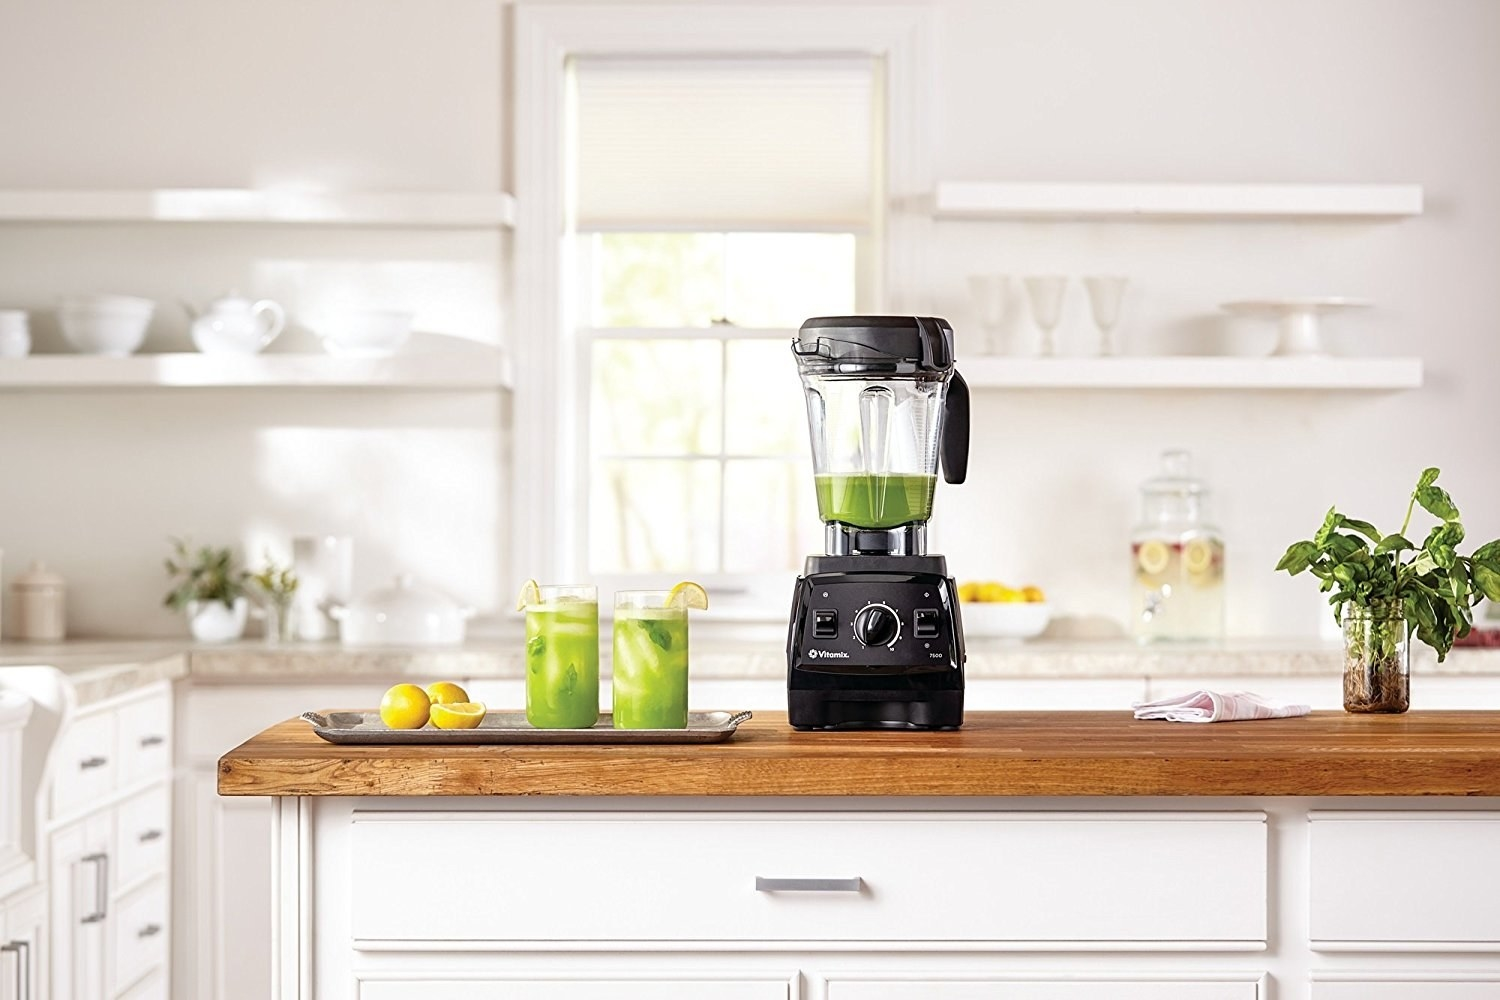 31 a vitamix blender with a motor for smoothie ingredients